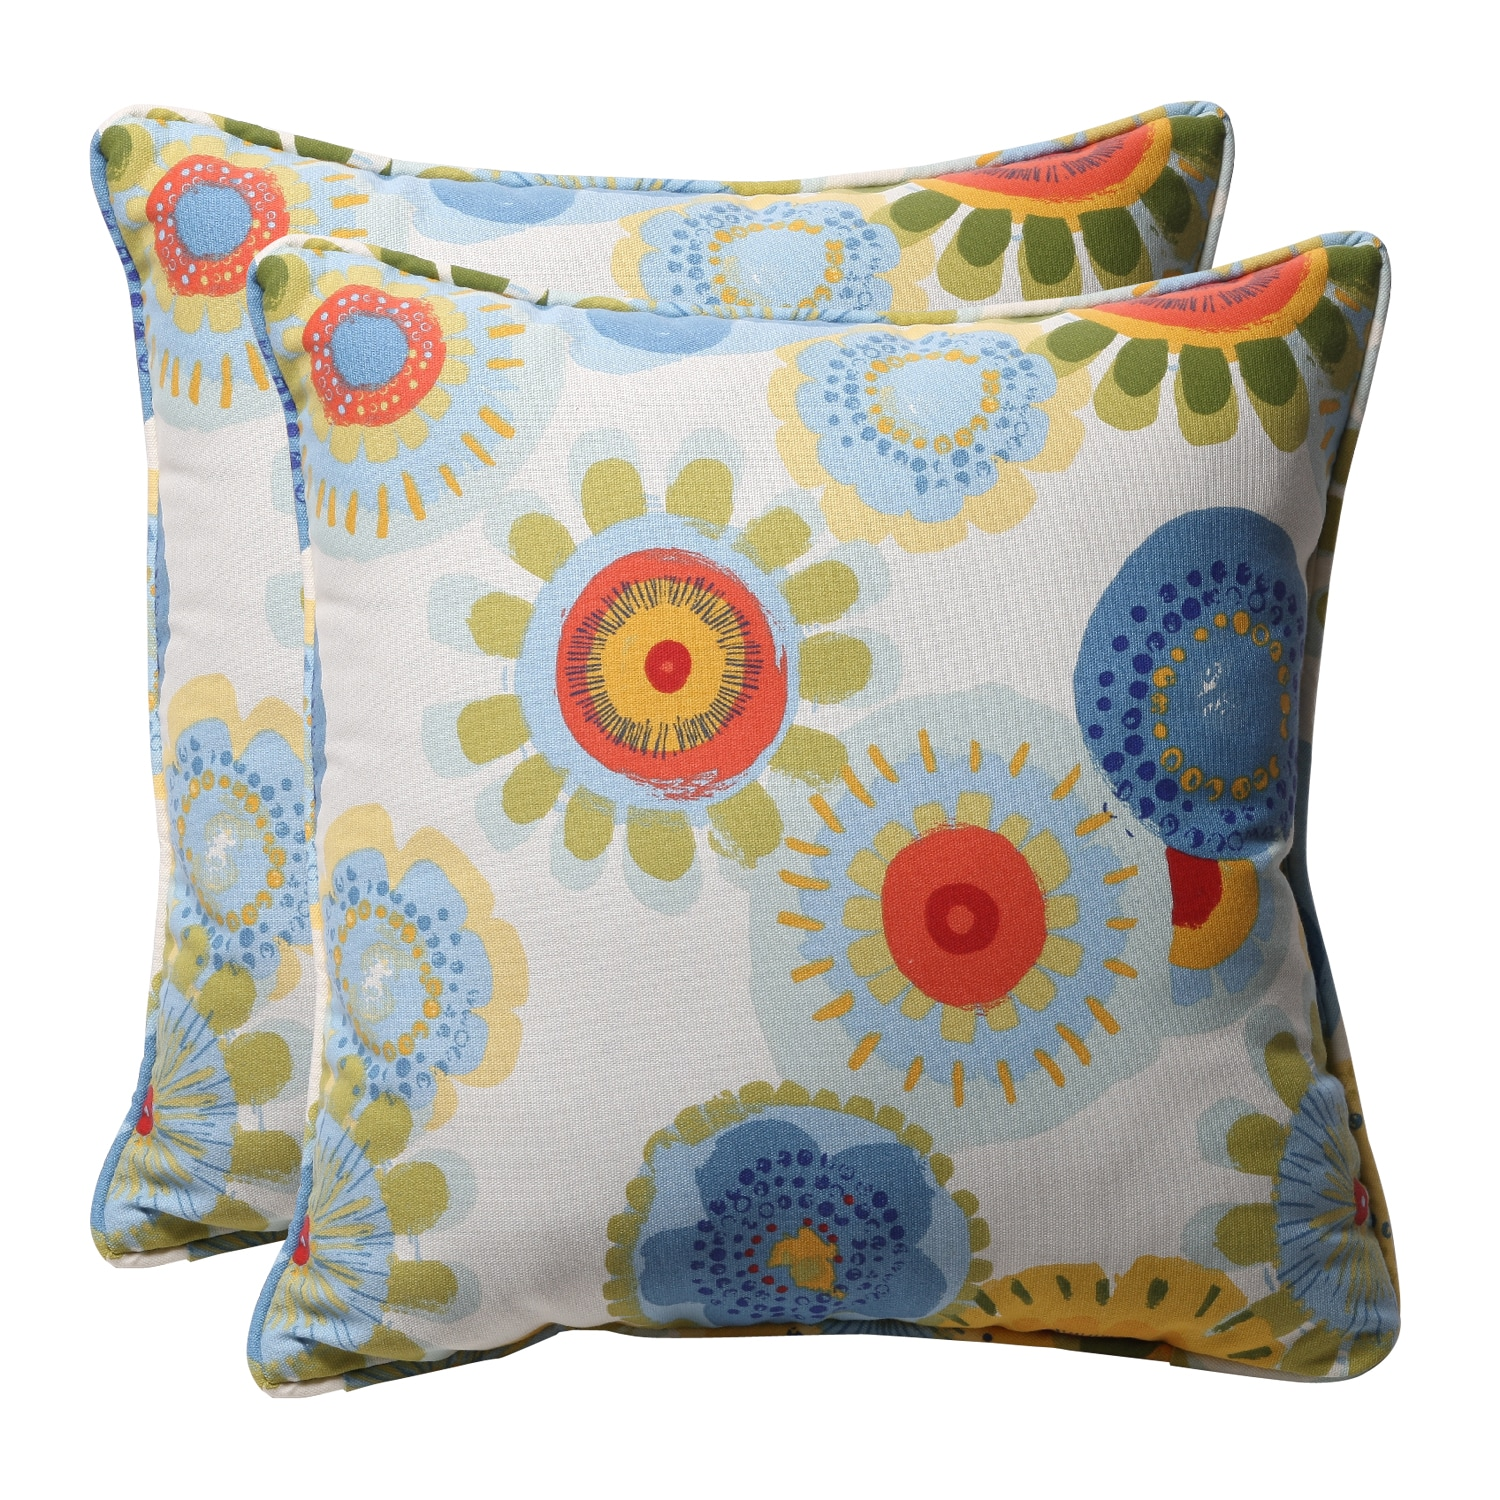 Decorative Multicolored Floral Square Outdoor Toss Polyester Pillows (Set of 2)